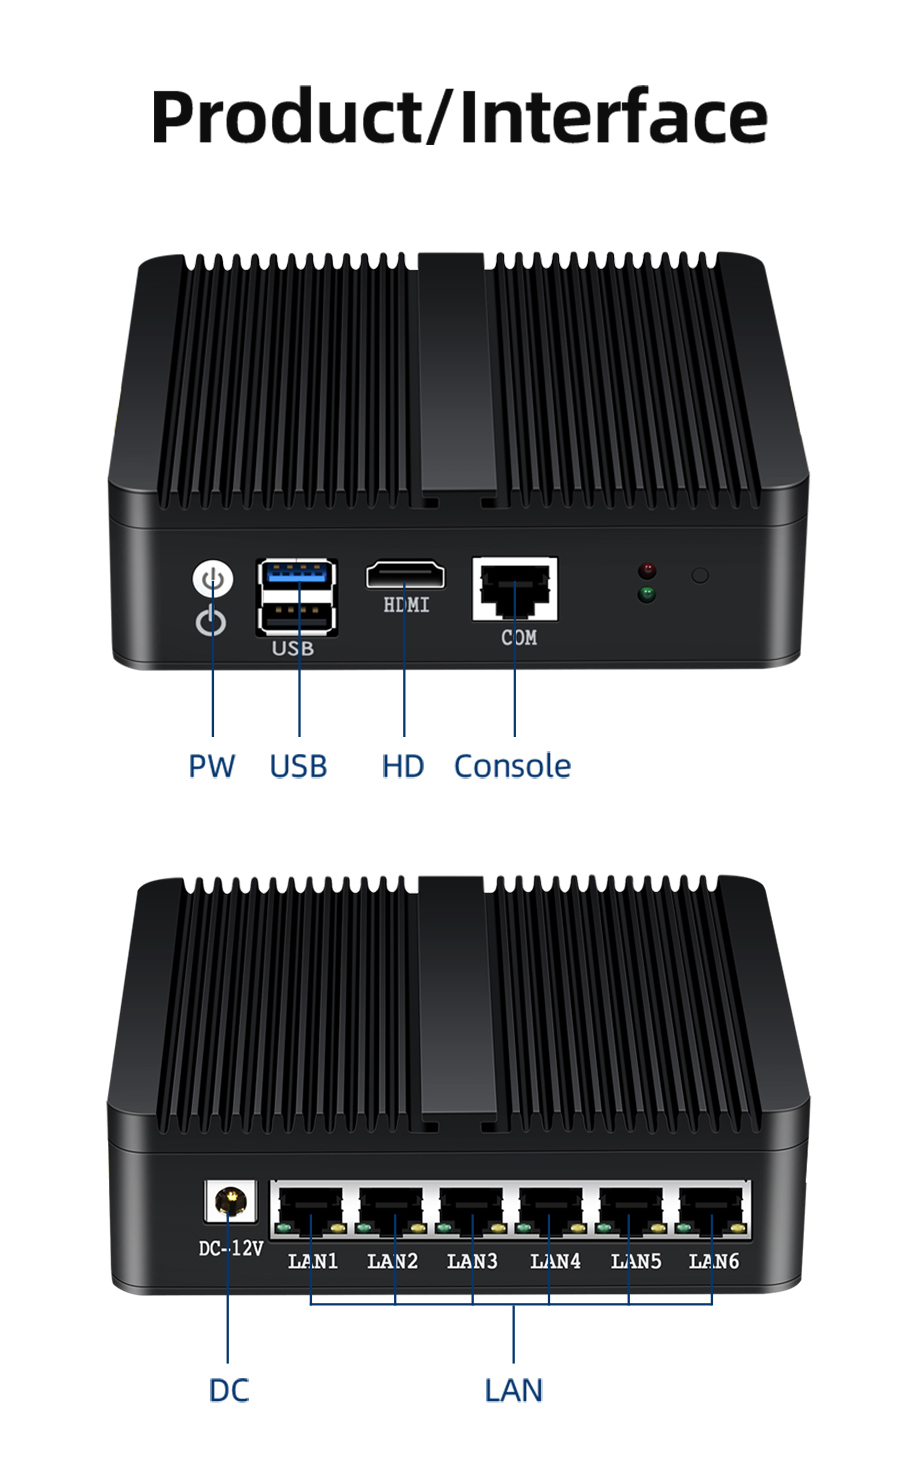 Mini PC Used as Router and Firewall with 6x1000Mbps LAN and Intel Celeron J1900 Processor 12